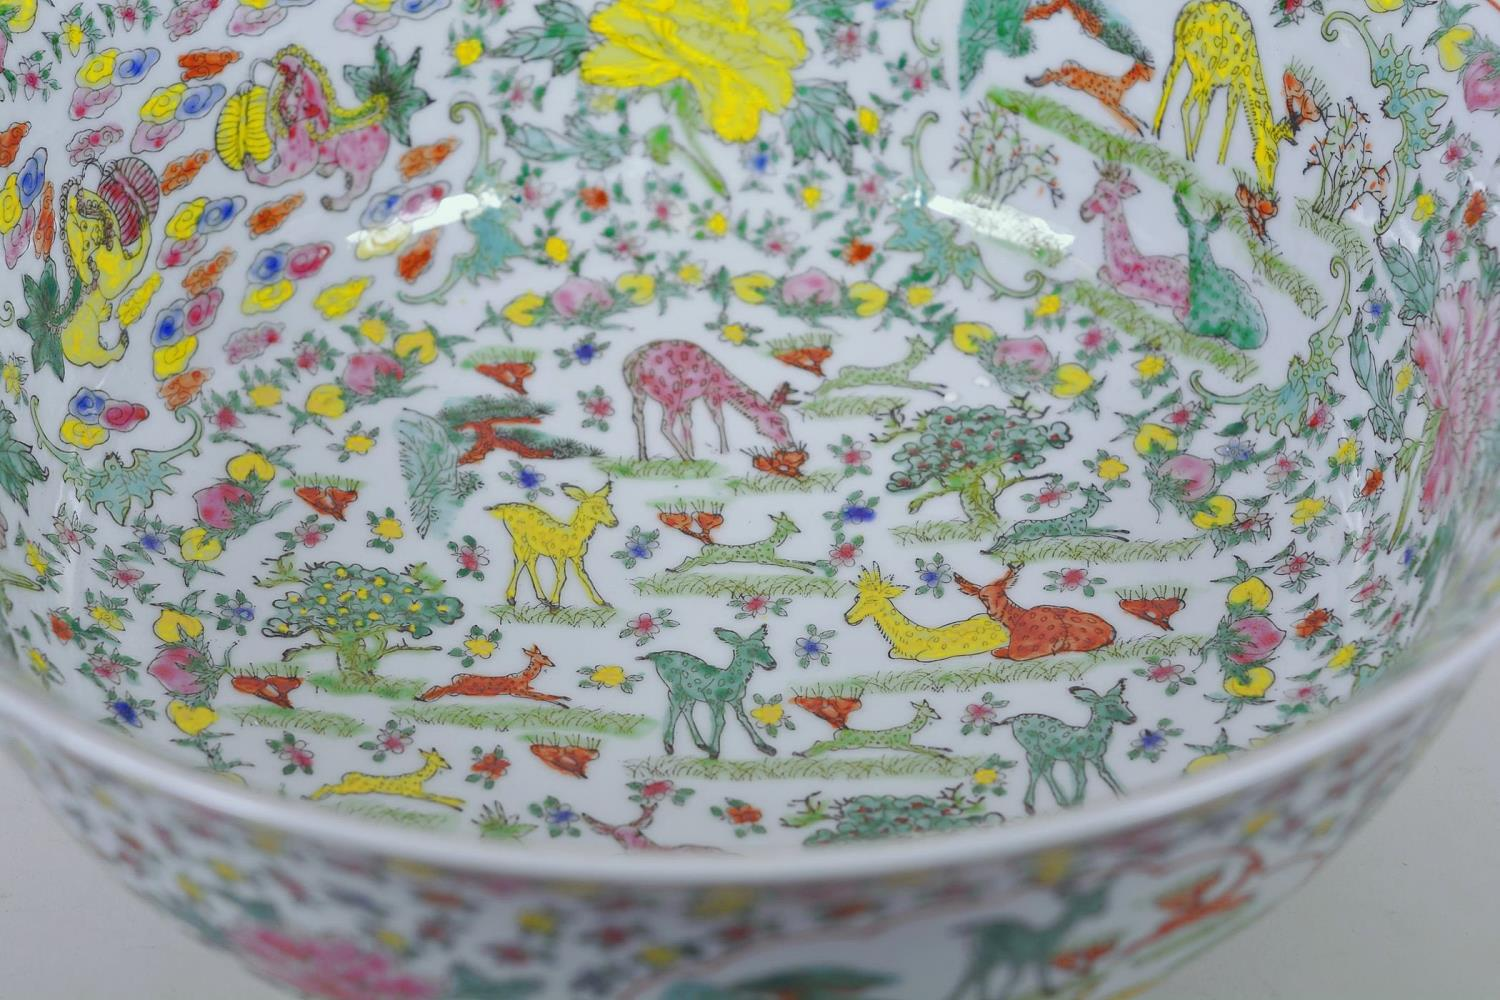 Lot 21 - A large Chinese porcelain bowl decorated with deer, mythical beasts and flowers in bright enamels,